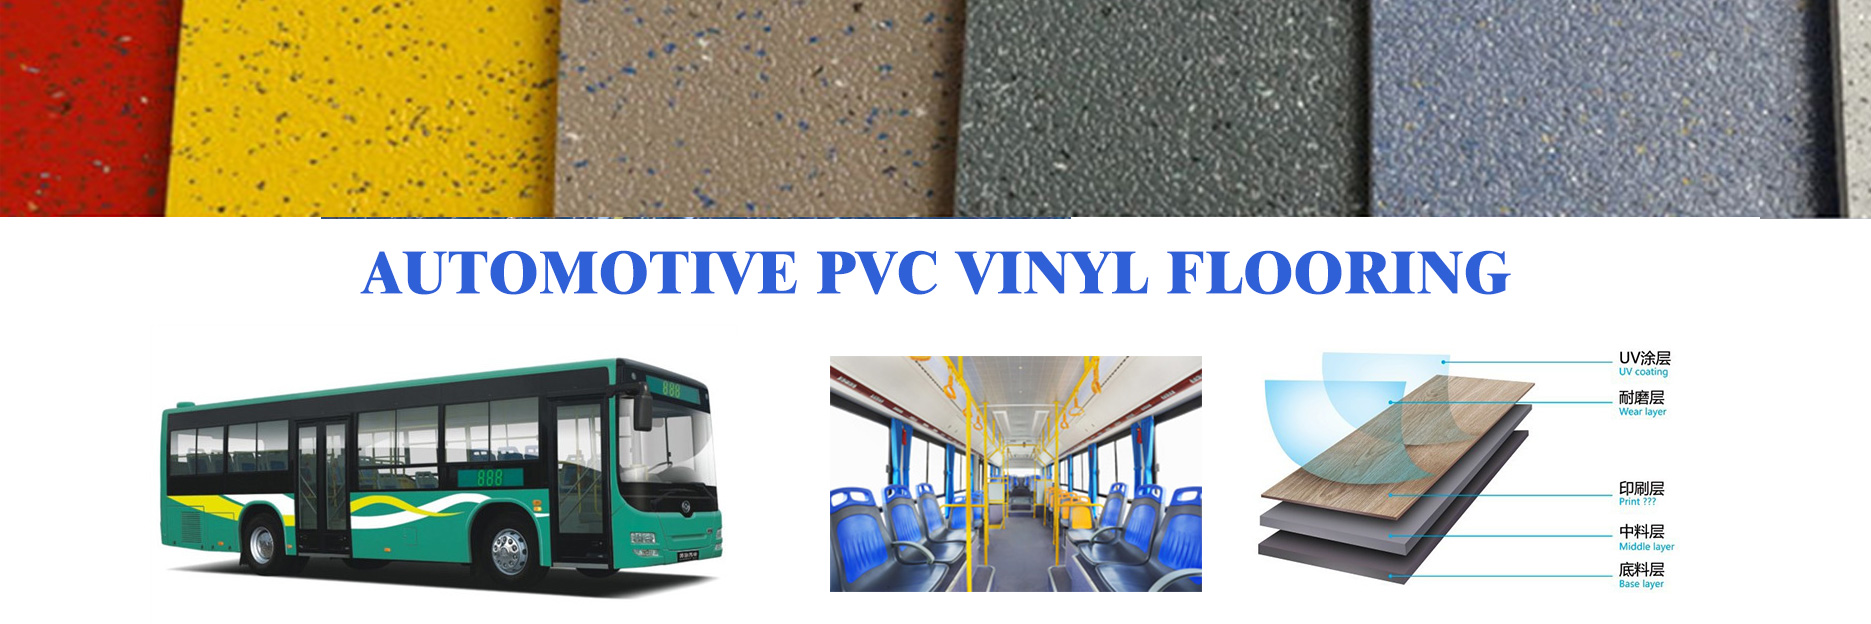 automotive pvc vinyl flooring